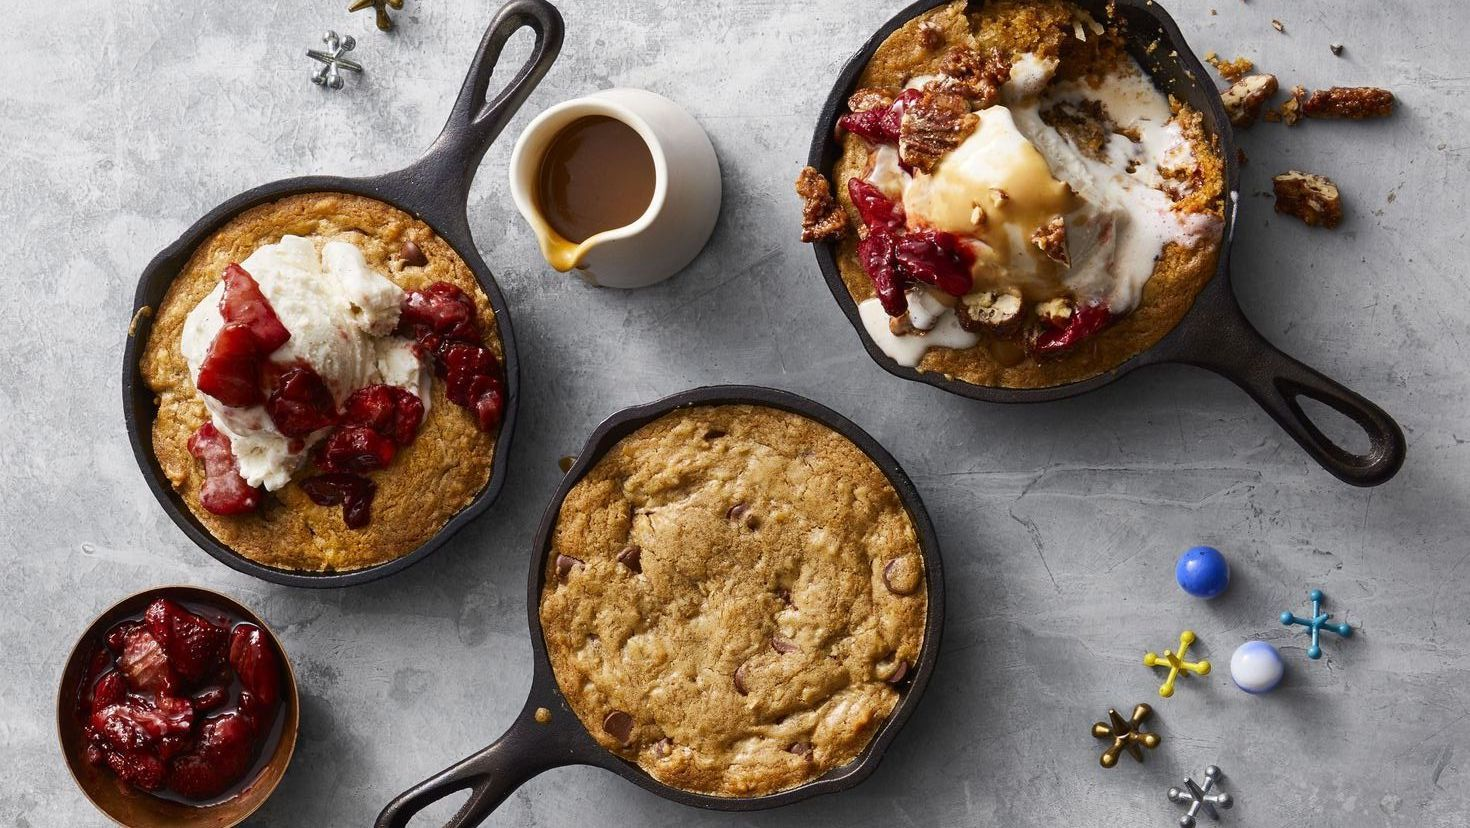 47 Best New Year's Desserts 2021 - Best Desserts for the New Year